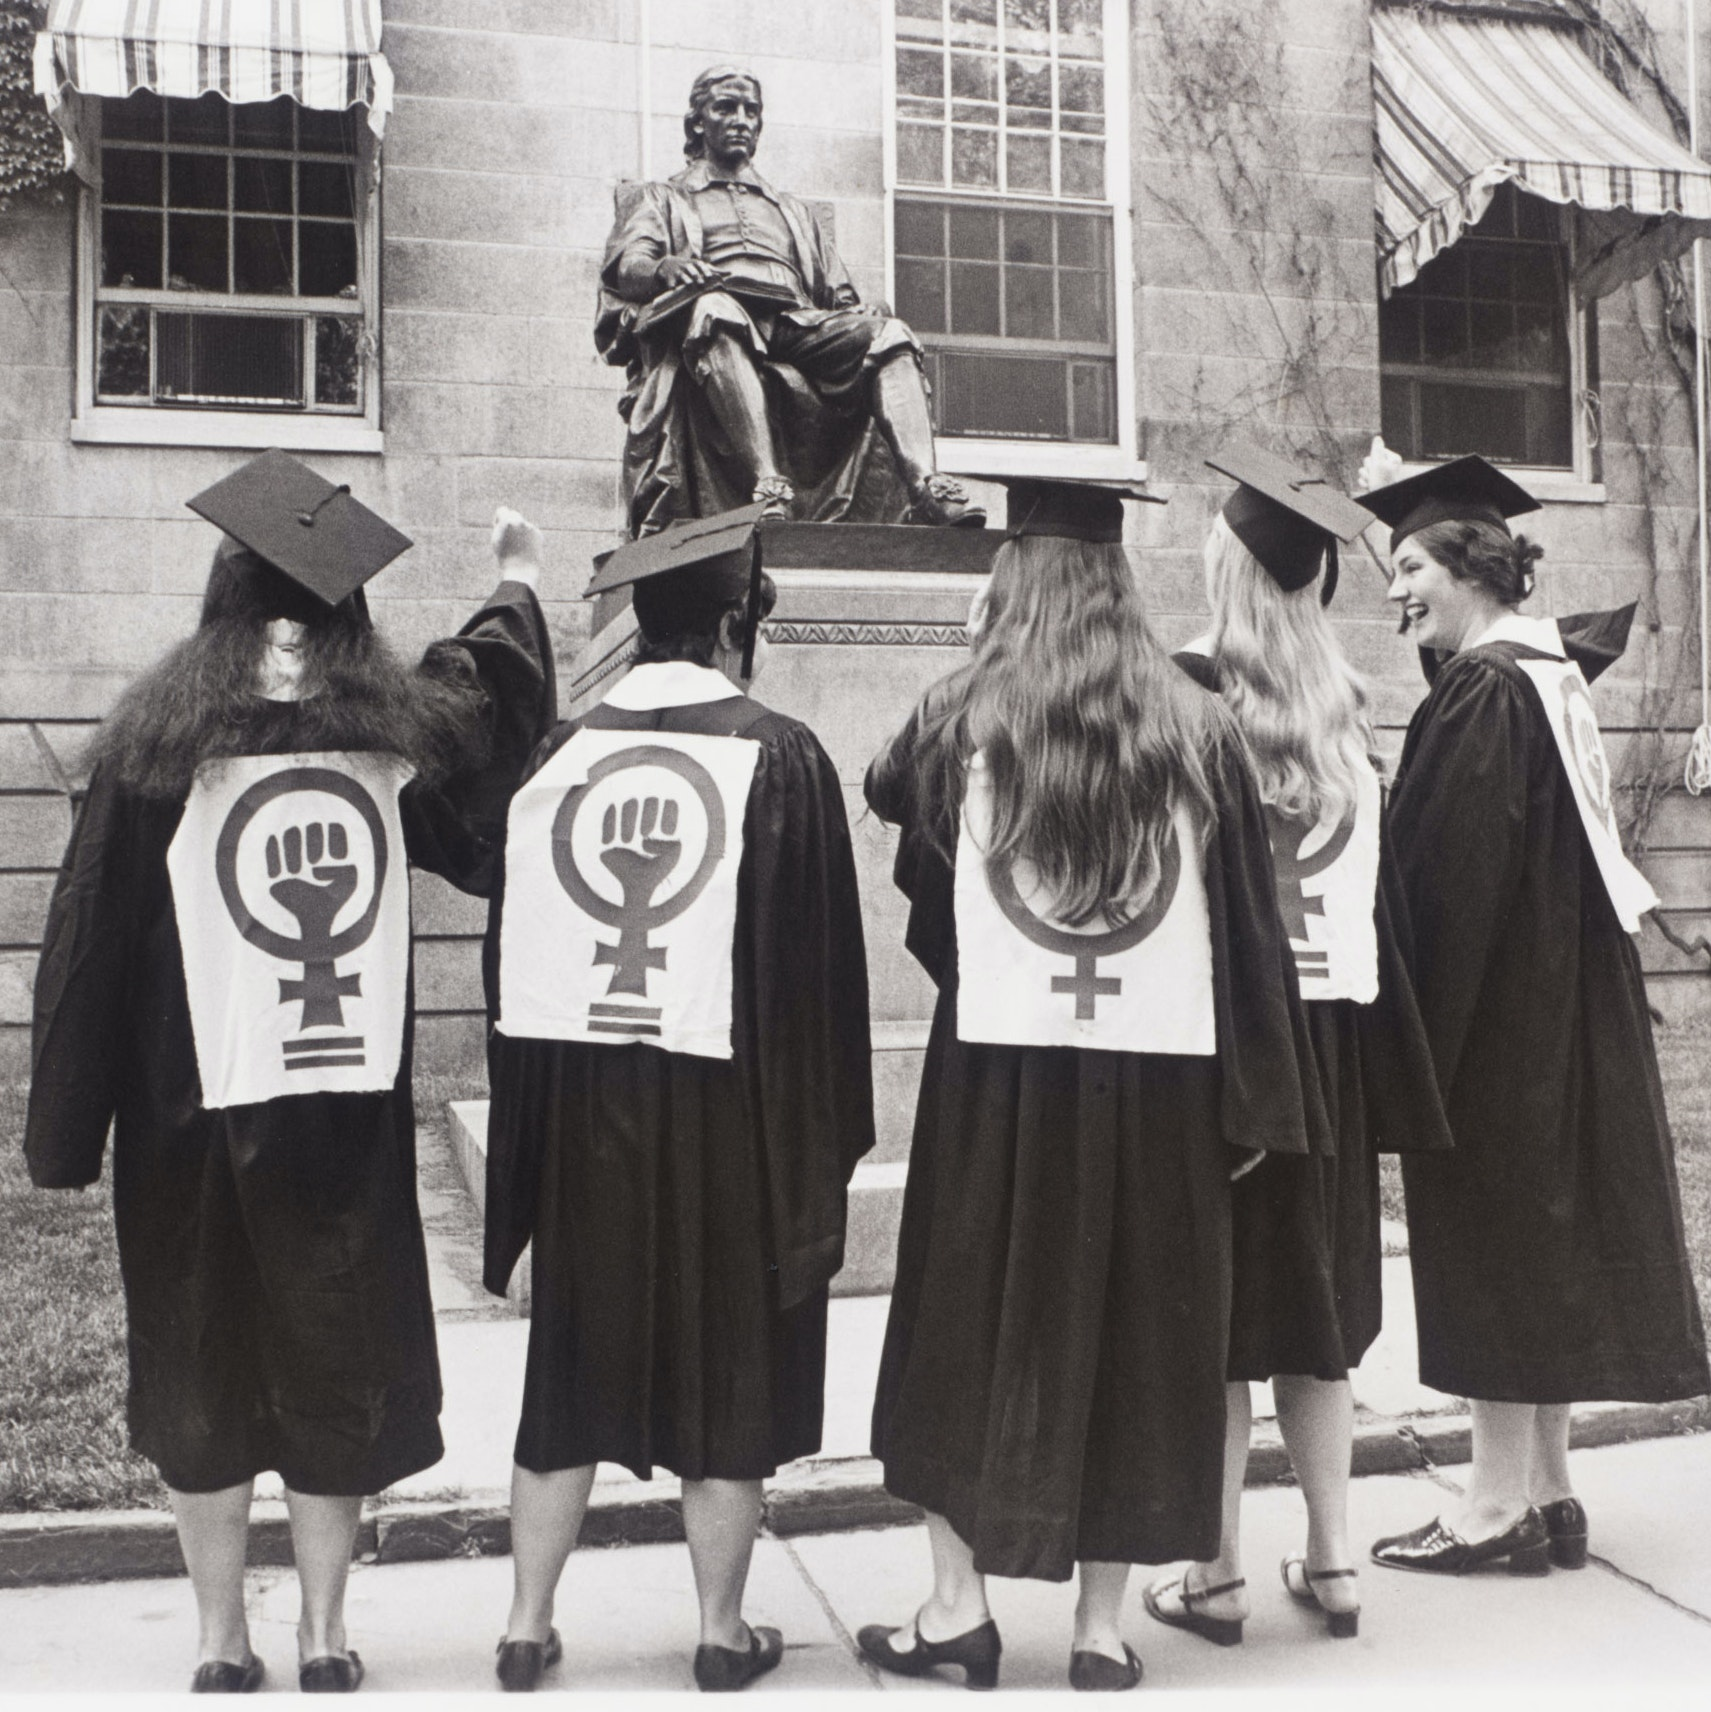 Equal Access For Women protest at Commencement